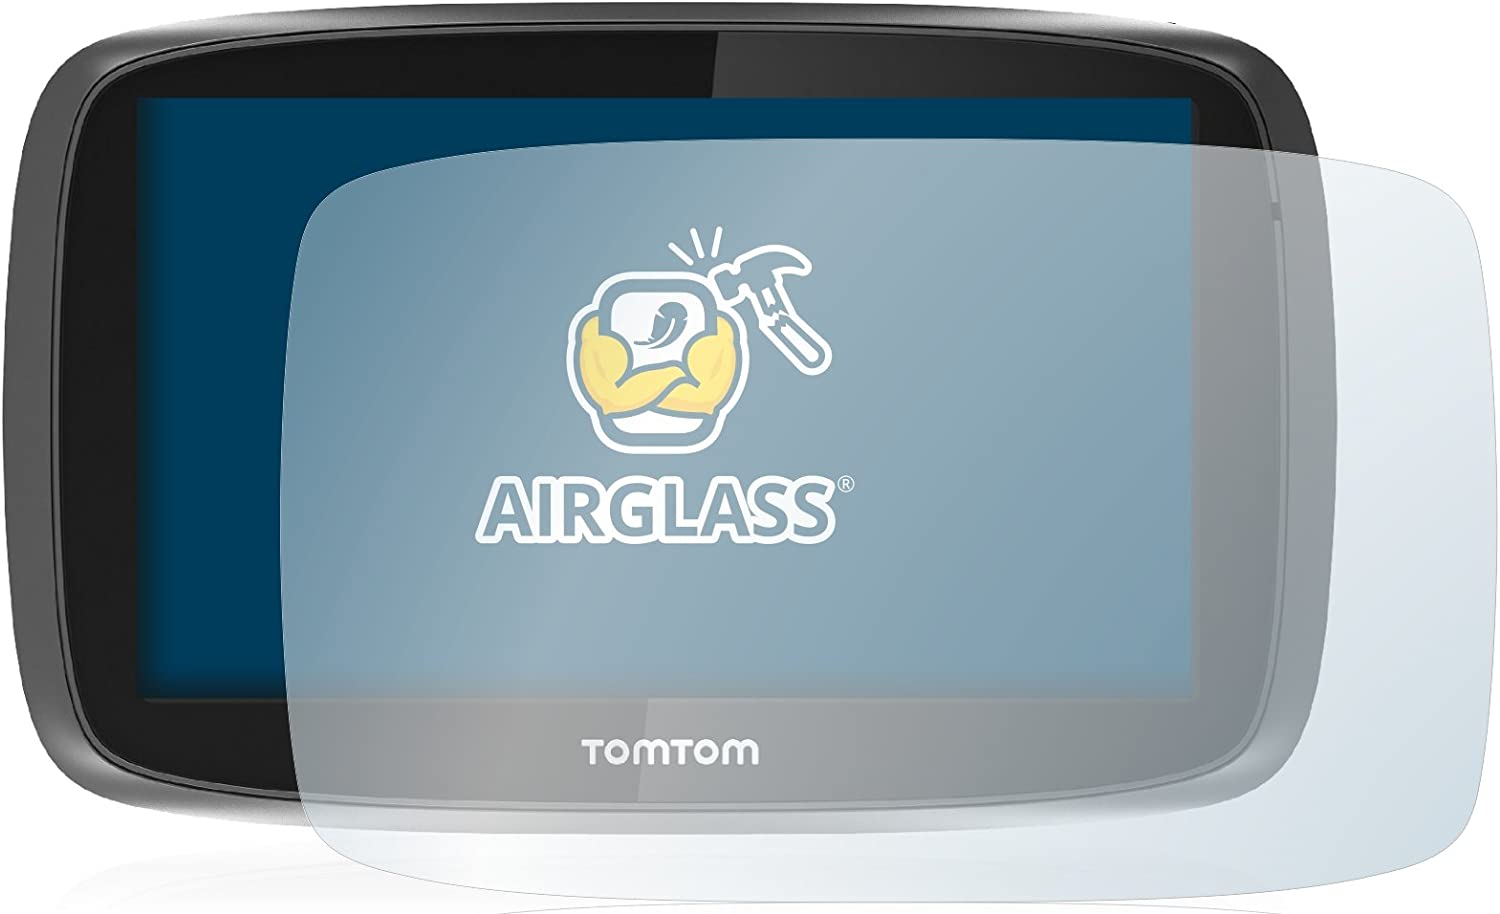 Extreme Scratch Resistant AirGlass brotect Glass Screen Protector compatible with TomTom GO 510 2015 Glass Protector